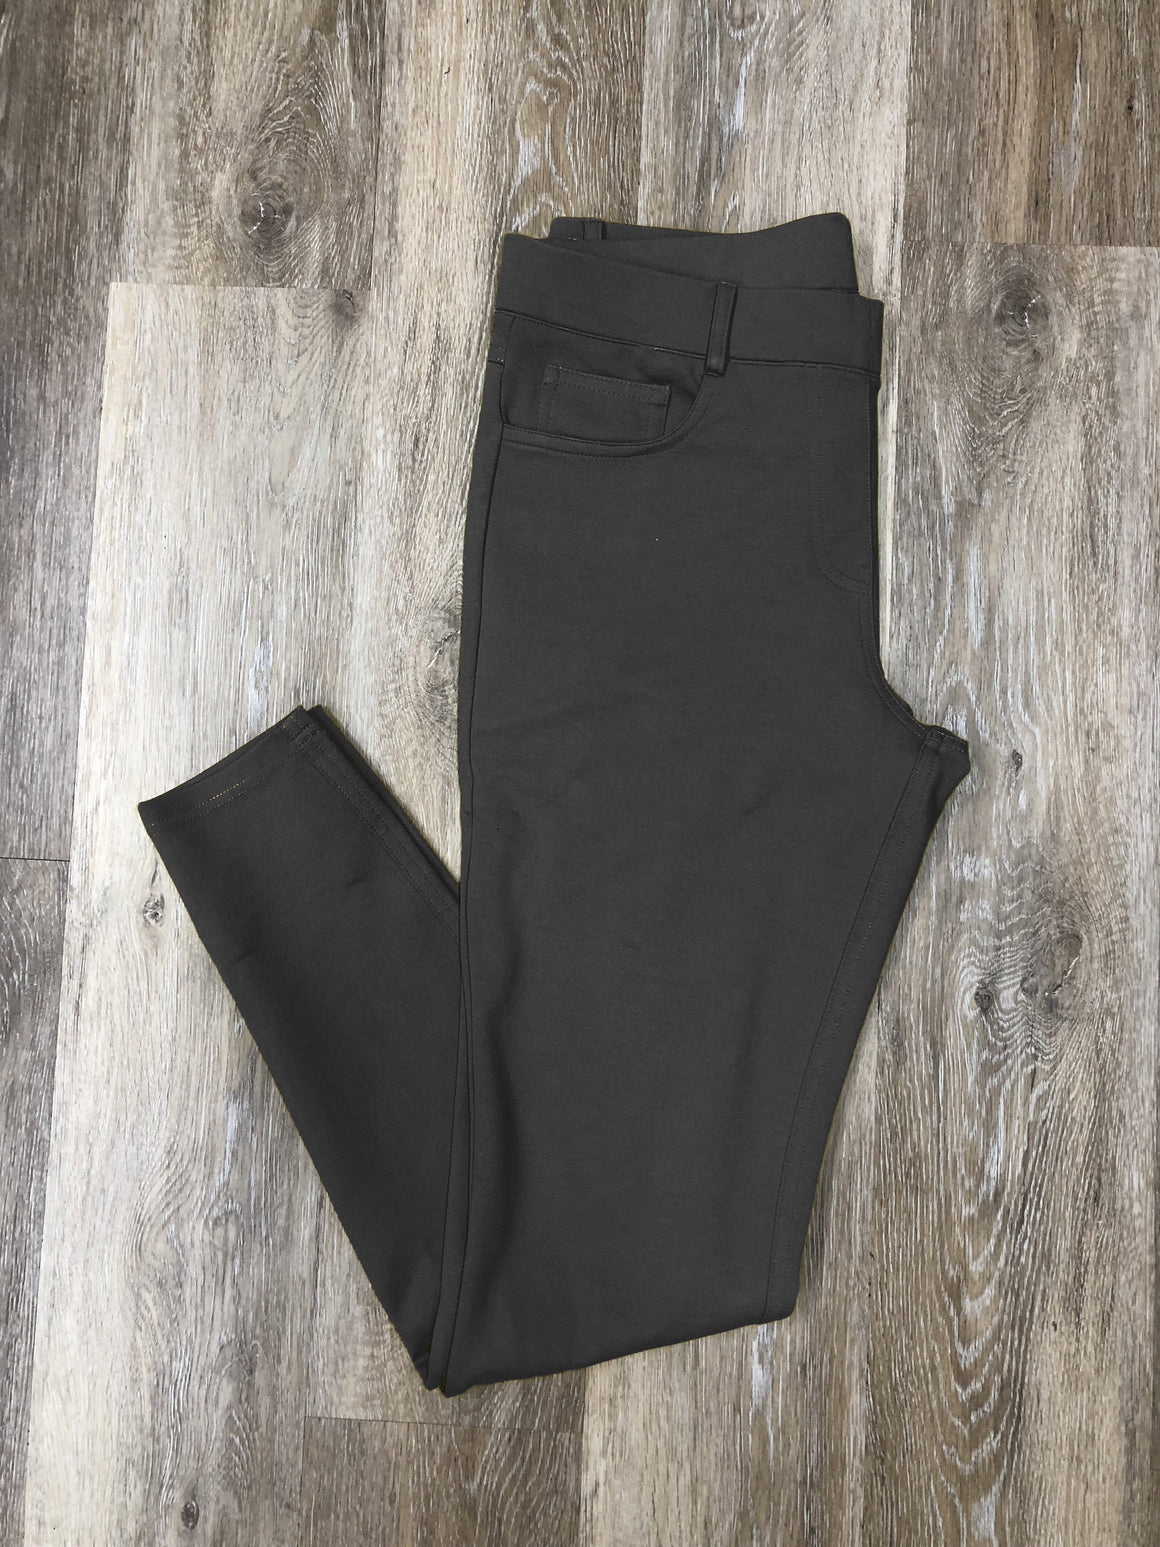 Charcoal Colored Skinnies - Warehouse Apparel